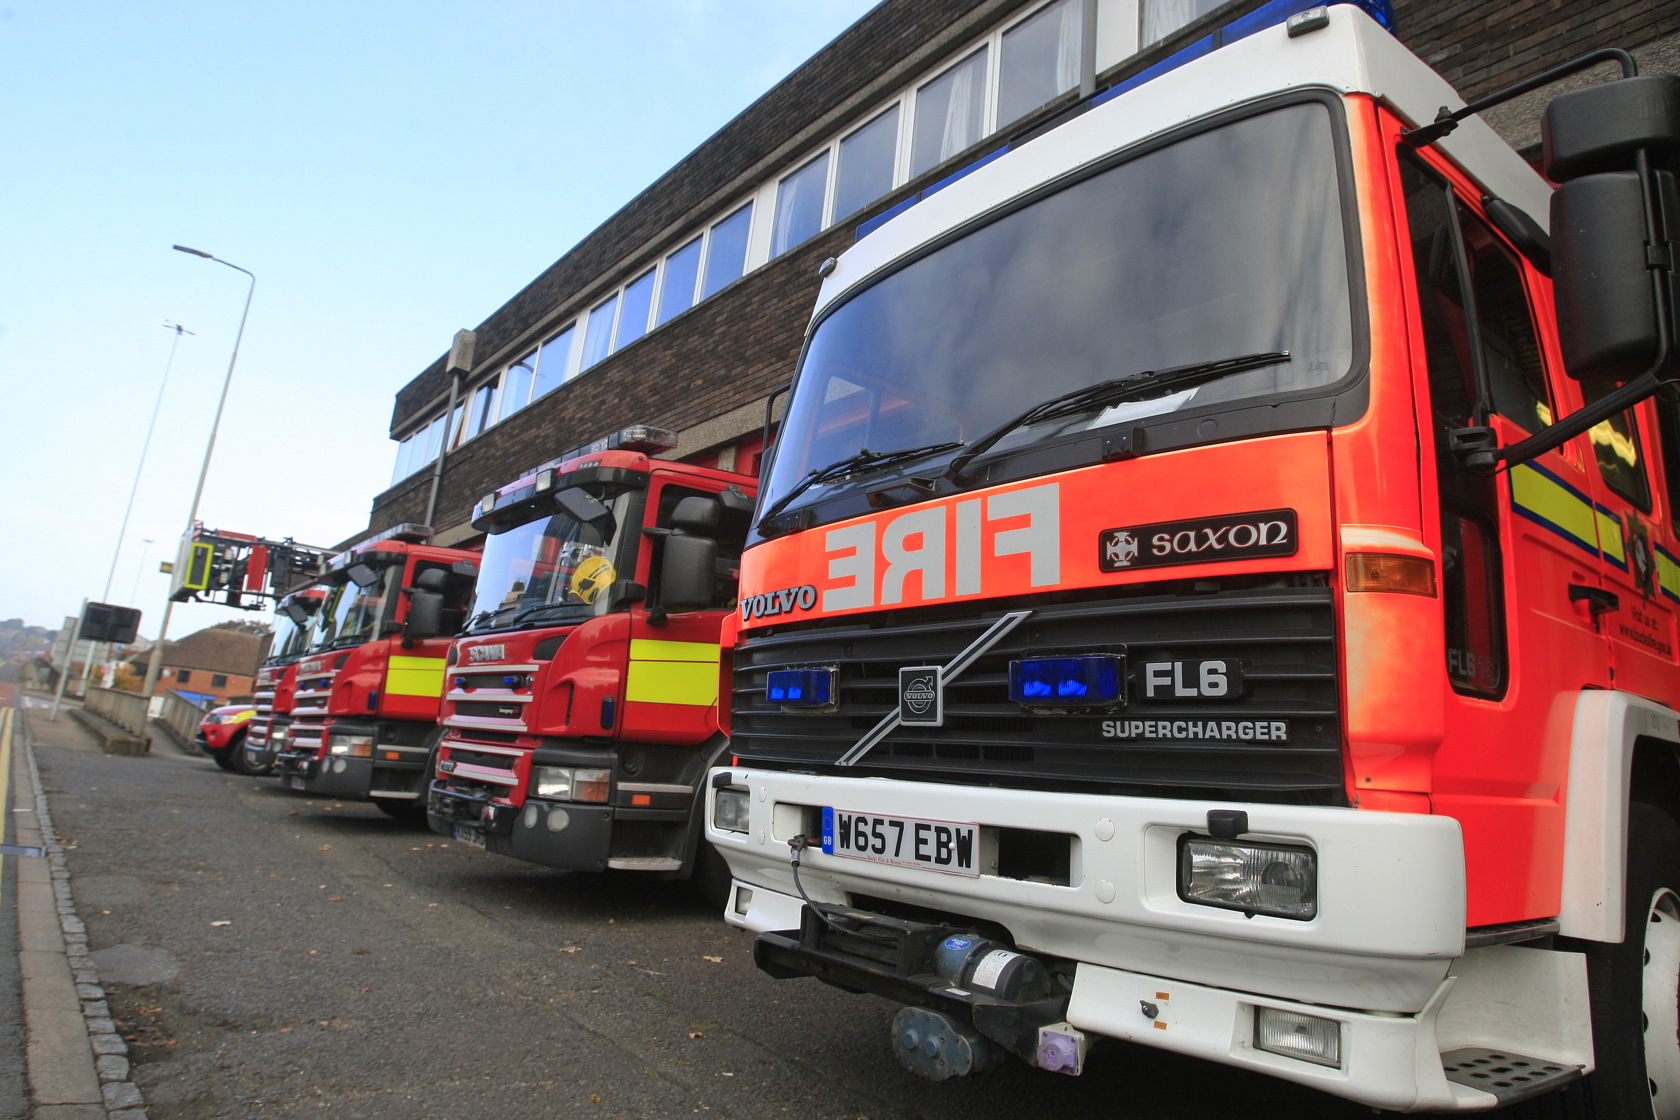 Firefighters from Slough and Langley fought house fire